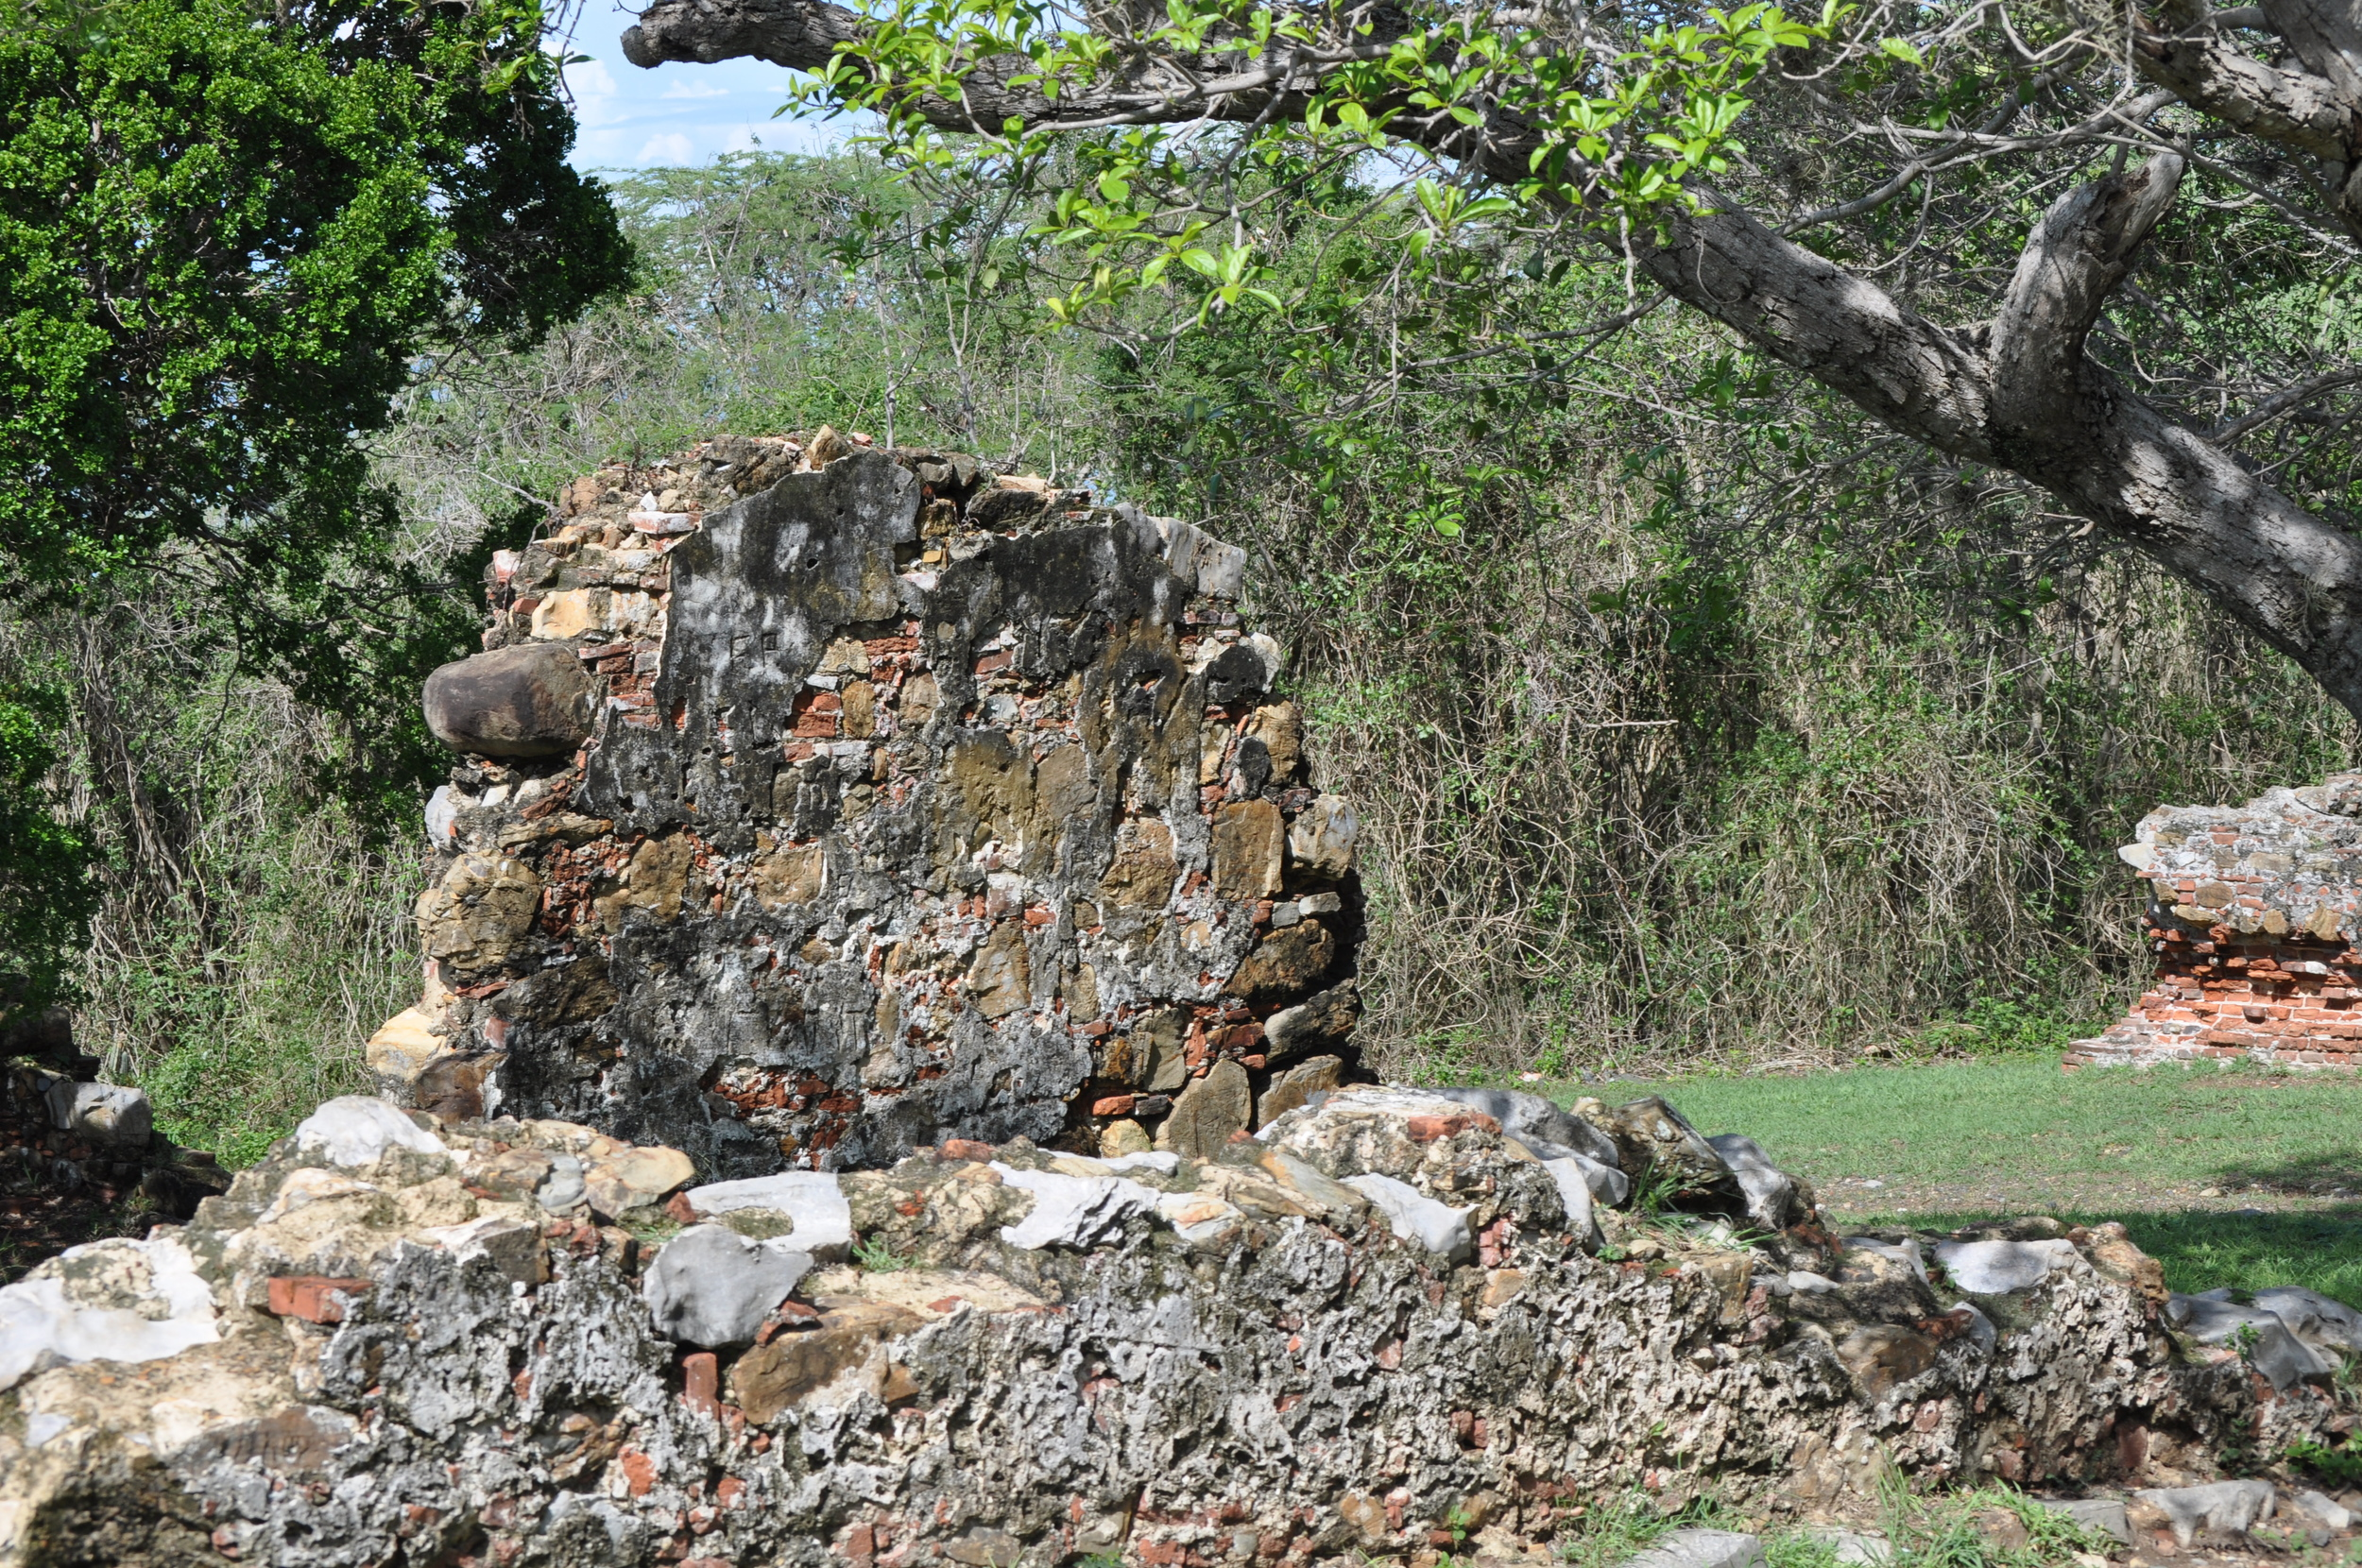 The ruins are located near the Reserve's entrance. Photo: Pamy Rojas